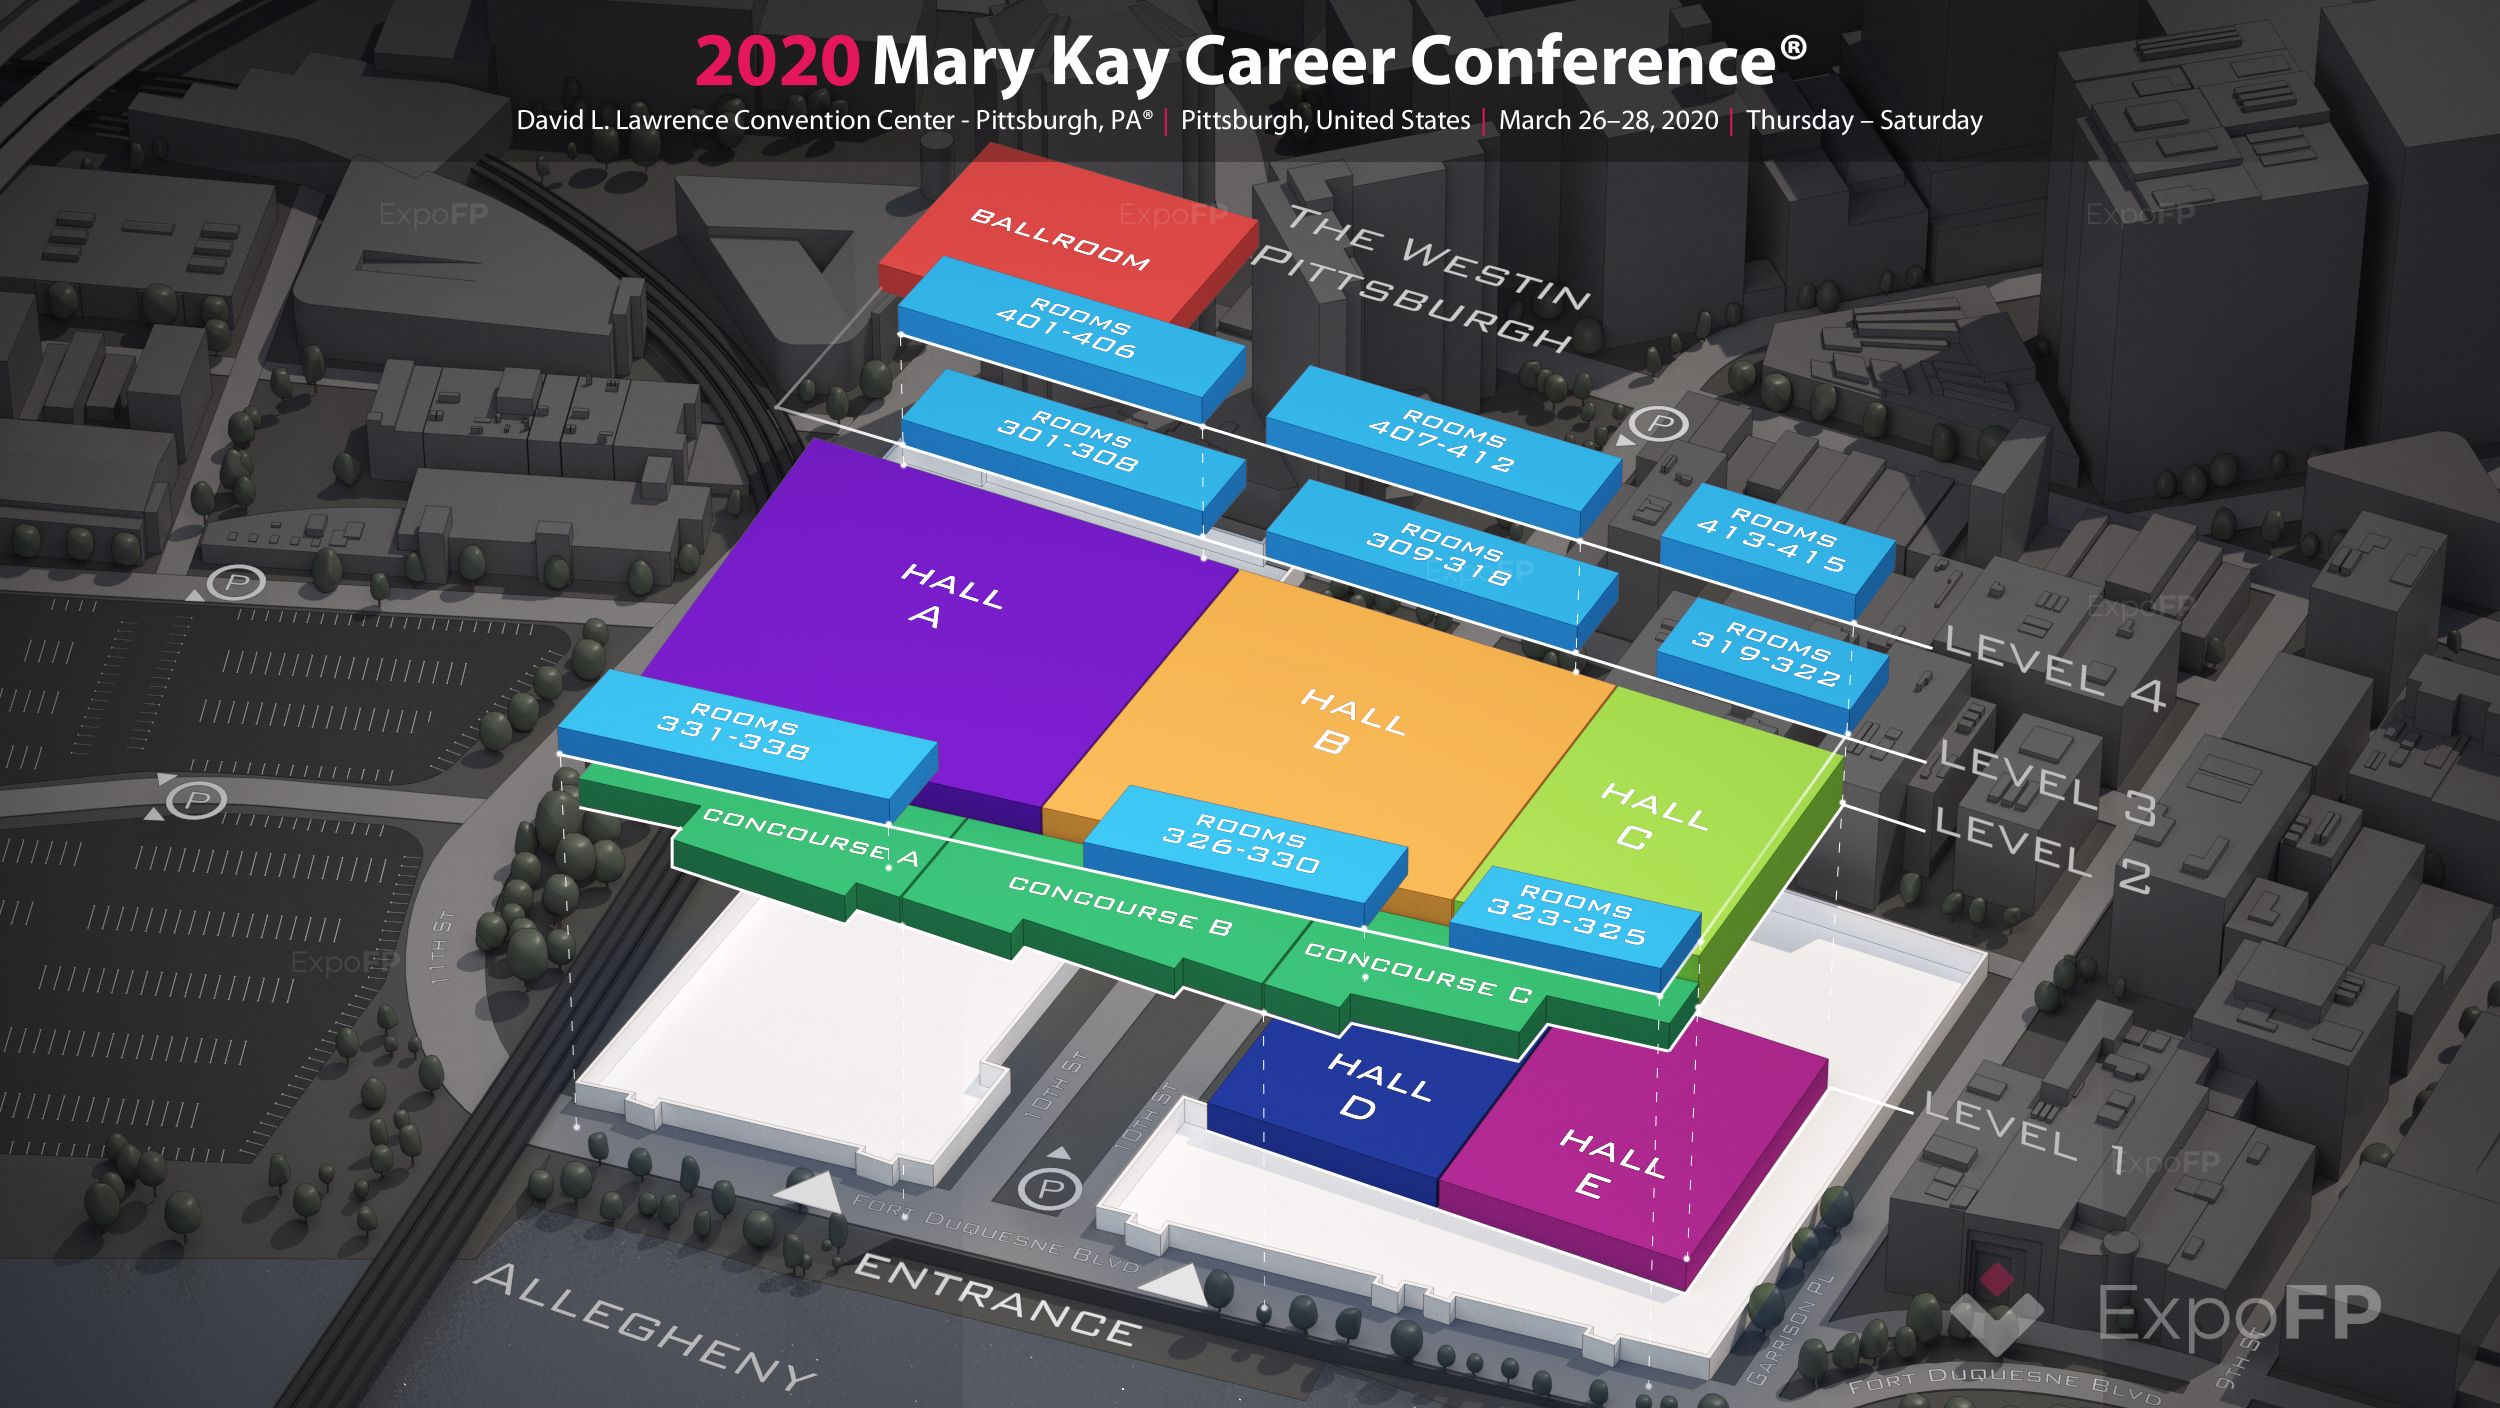 Mary Kay Spring 2020.Mary Kay Career Conference 2020 In David L Lawrence